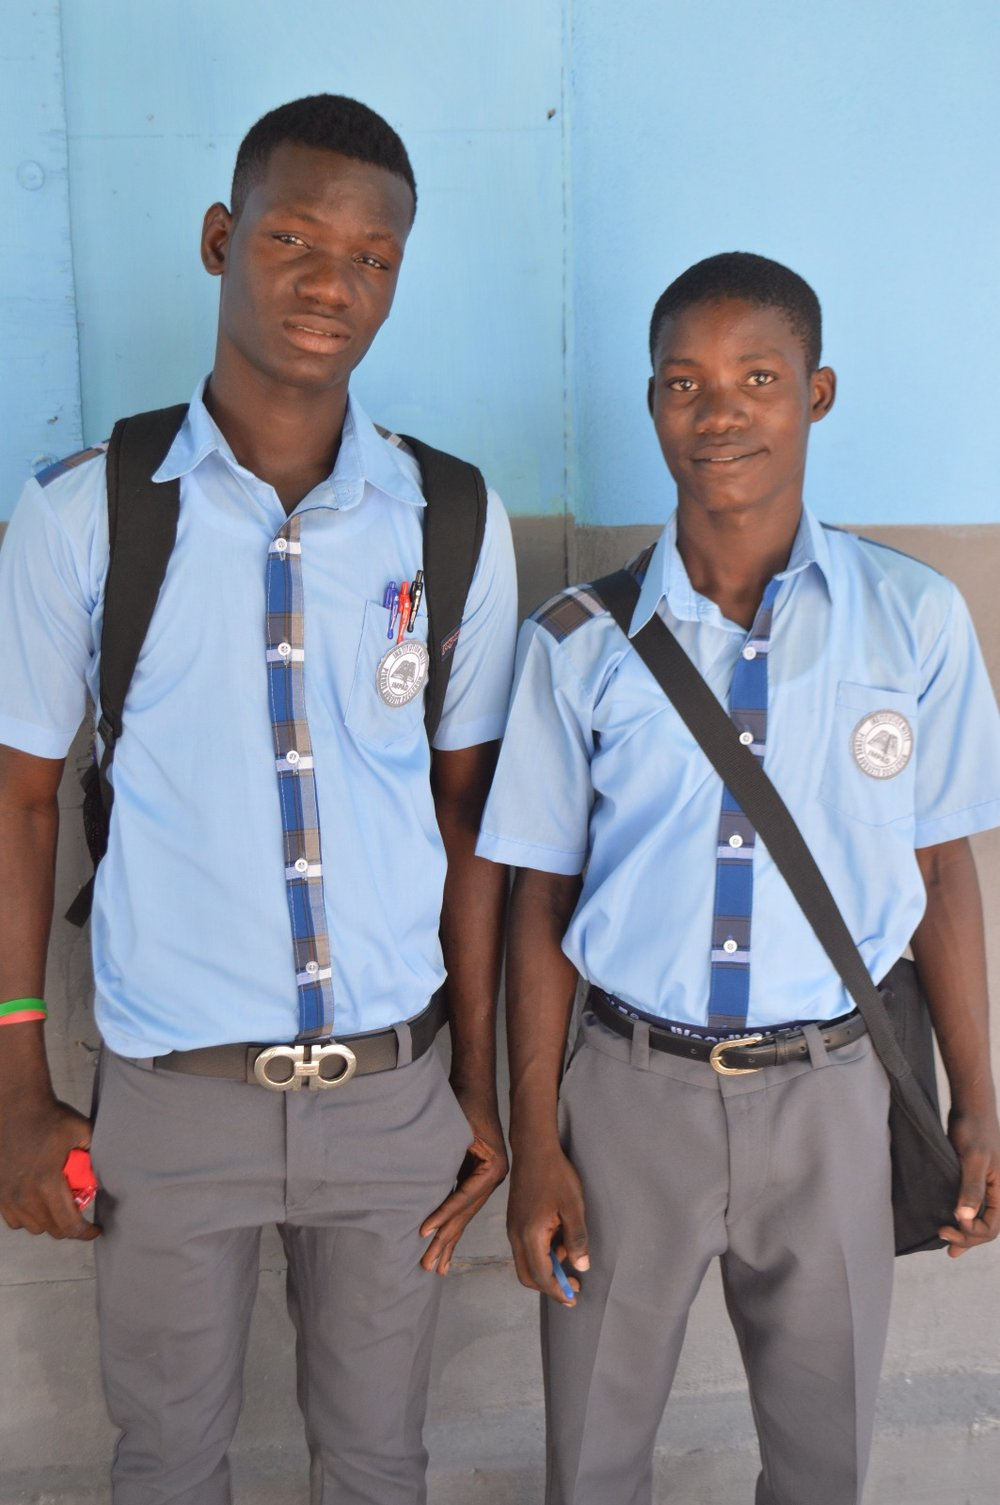 These two handsome young men started school at IMPAD this morning, too.  We are thankful for the way God provides for everyone associated with Haiti Awake.